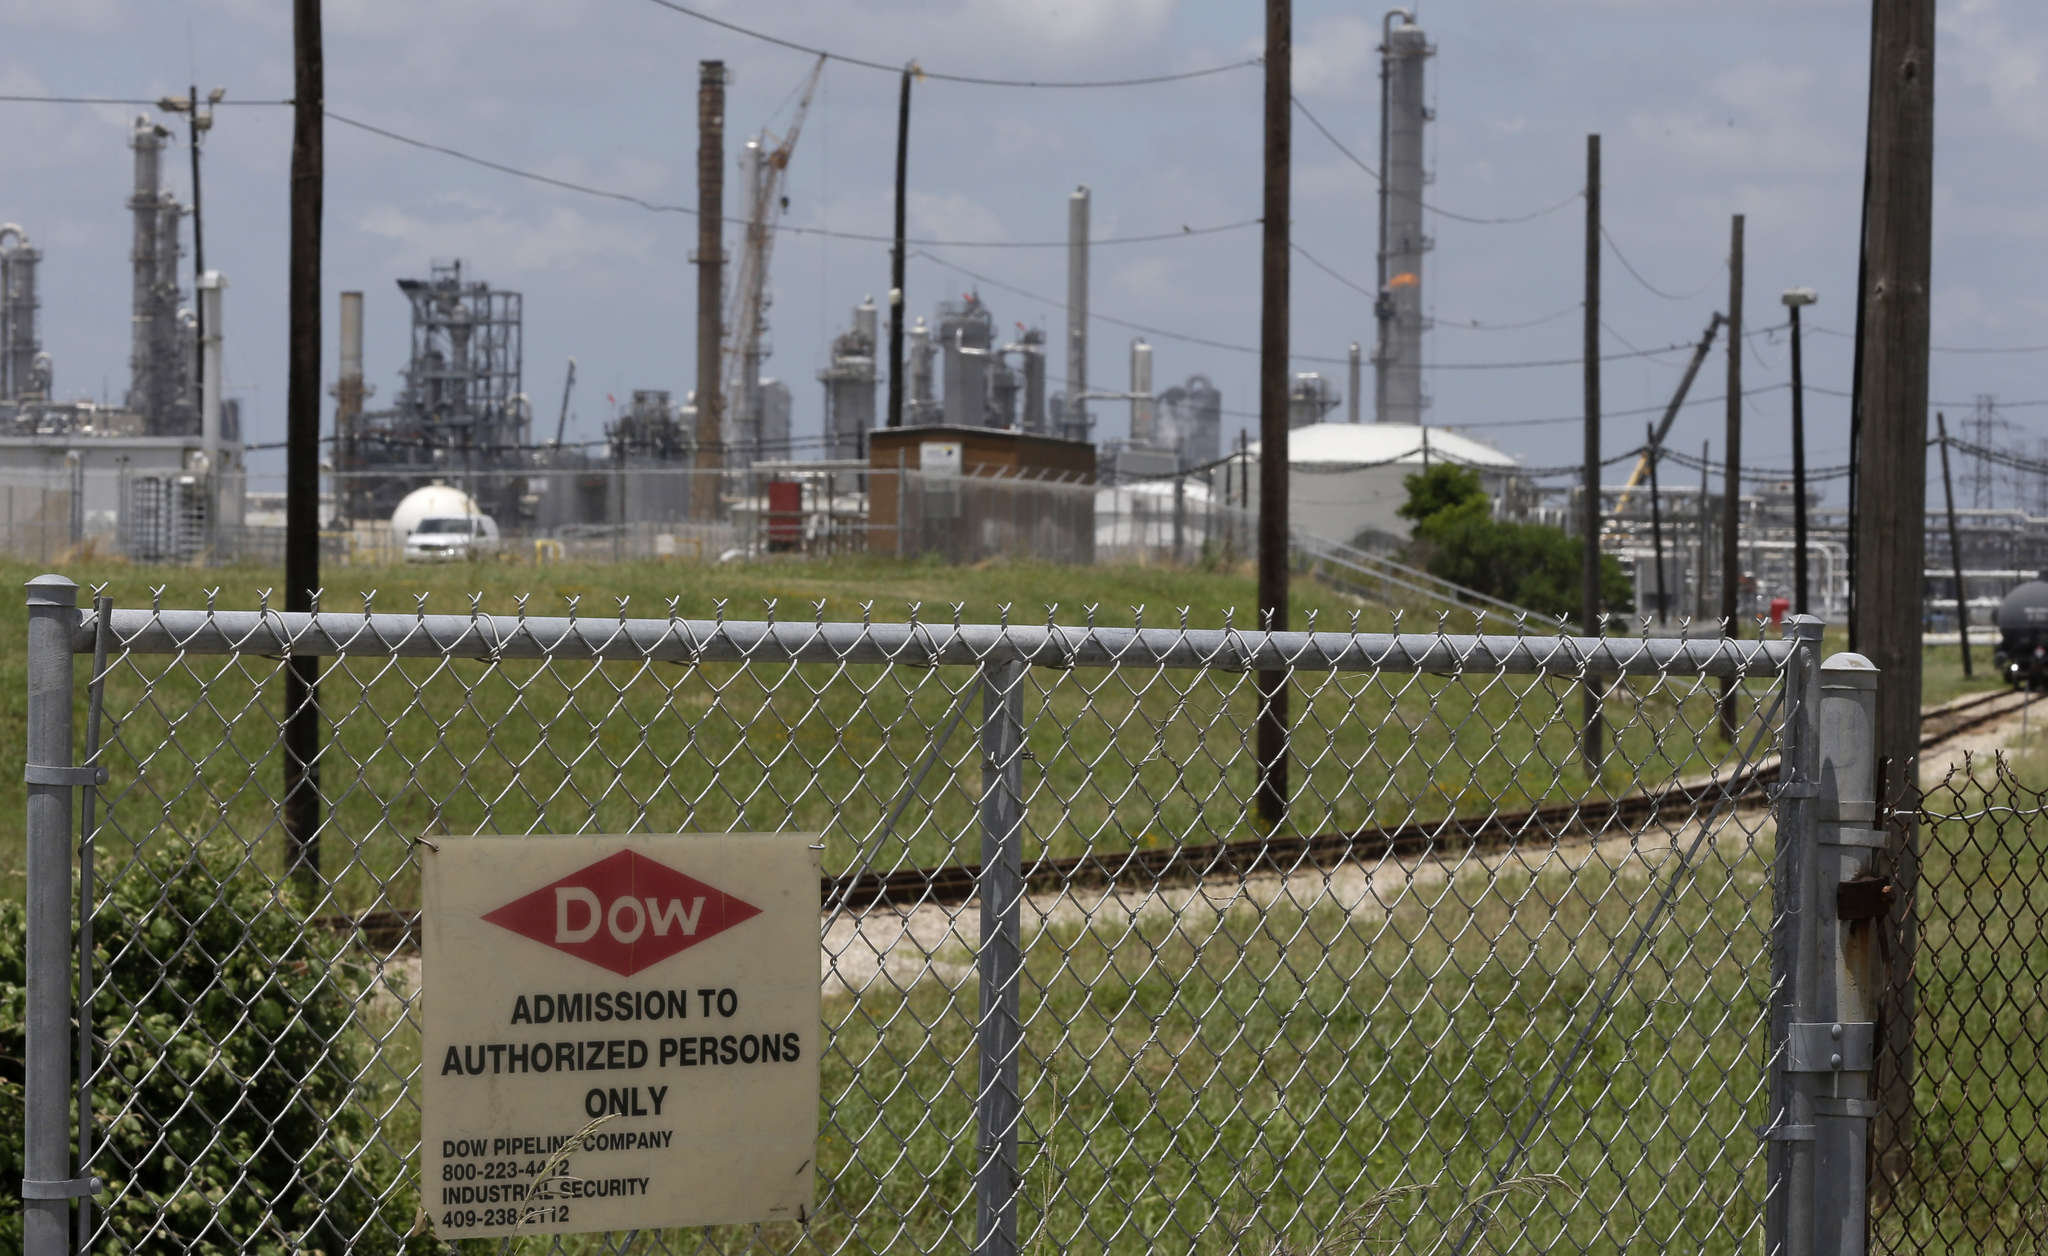 Stock prices for Dow Chemical and DuPont soared on reports that merger talks between the two giant chemical companies were in an advanced stage.